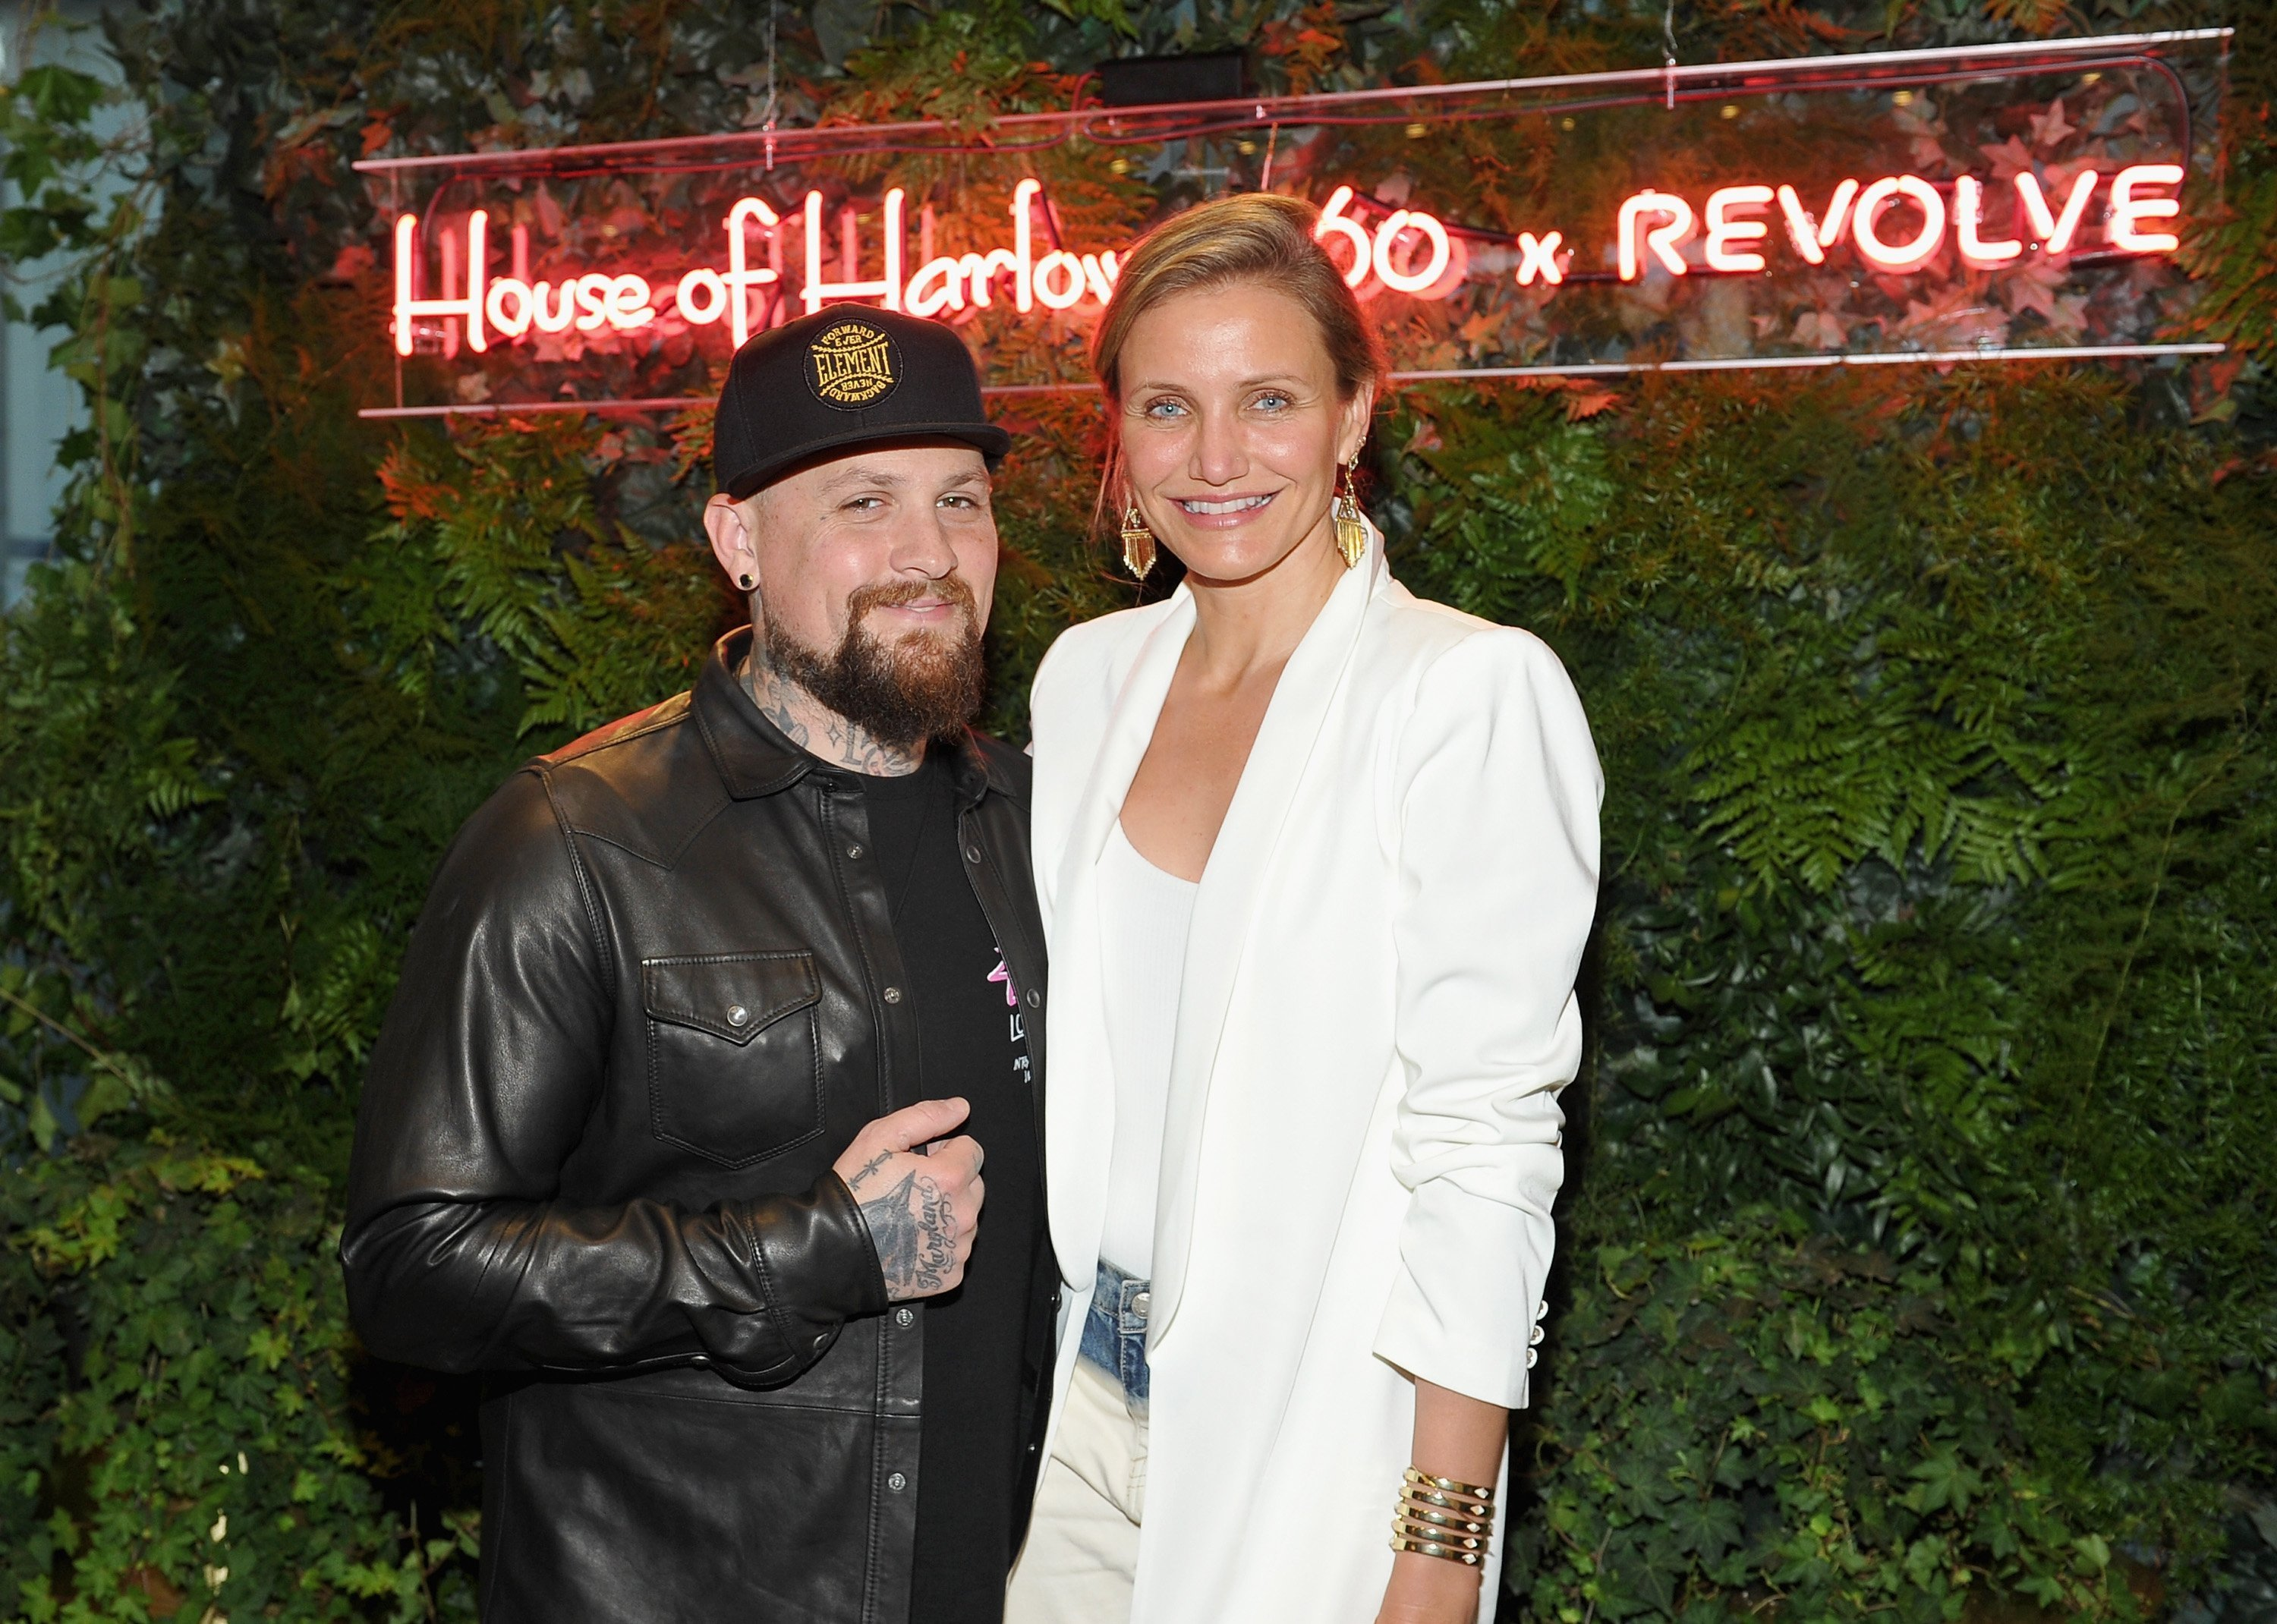 Benji Madden and actress Cameron Diaz attend House of Harlow 1960 x REVOLVE on June 2, 2016, in Los Angeles, California. | Source: Getty Images.